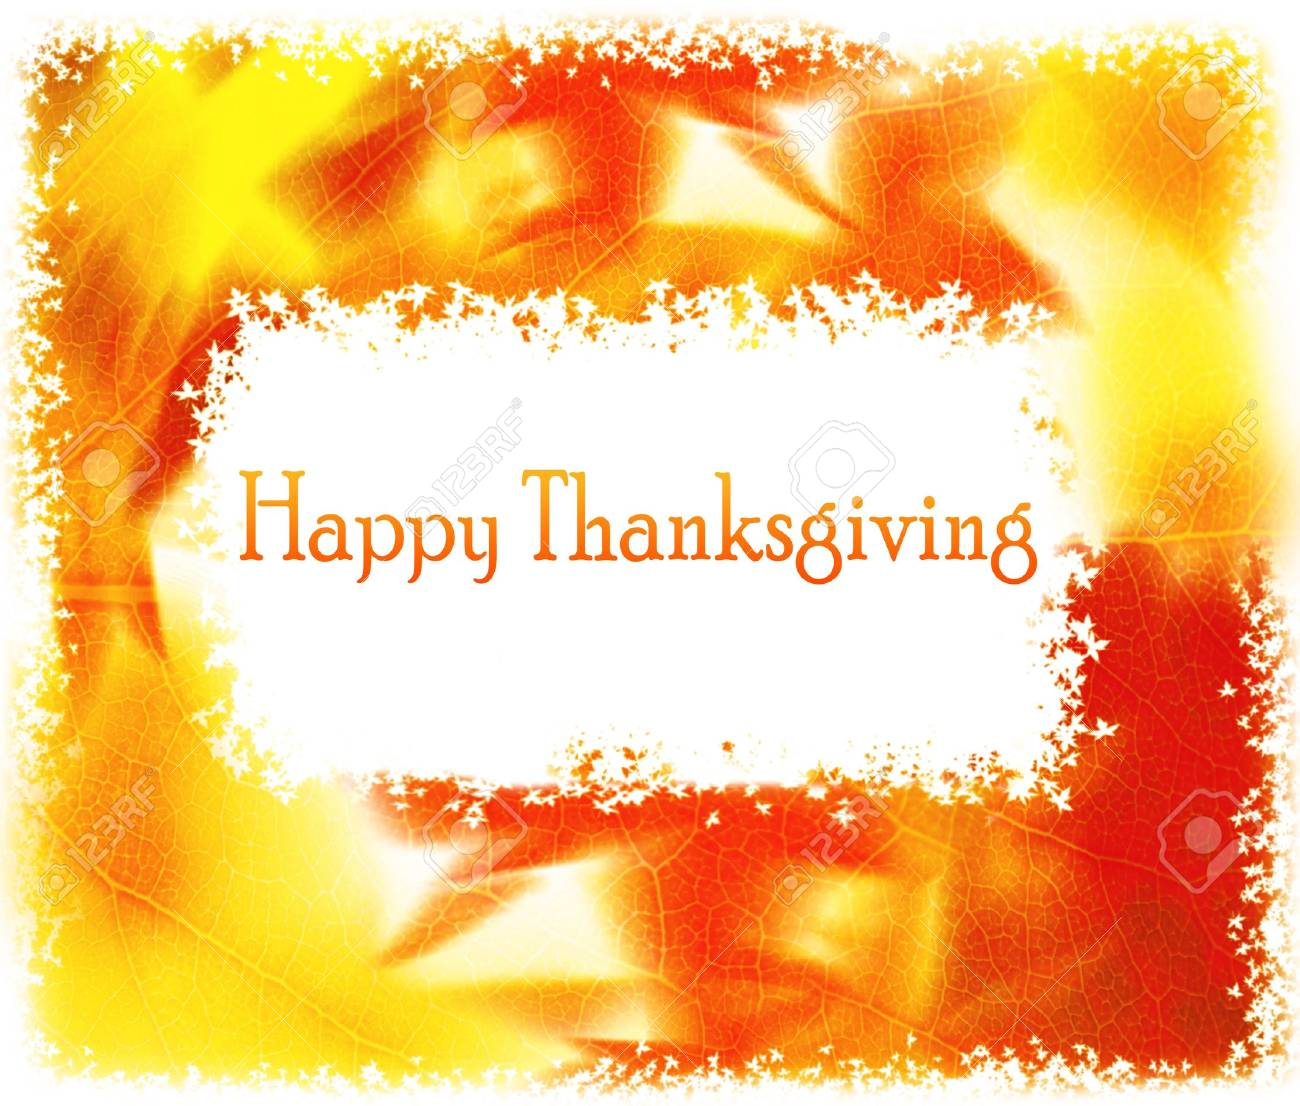 Thanksgiving holiday greeting card with orange gourds Stock Photo - 8108058